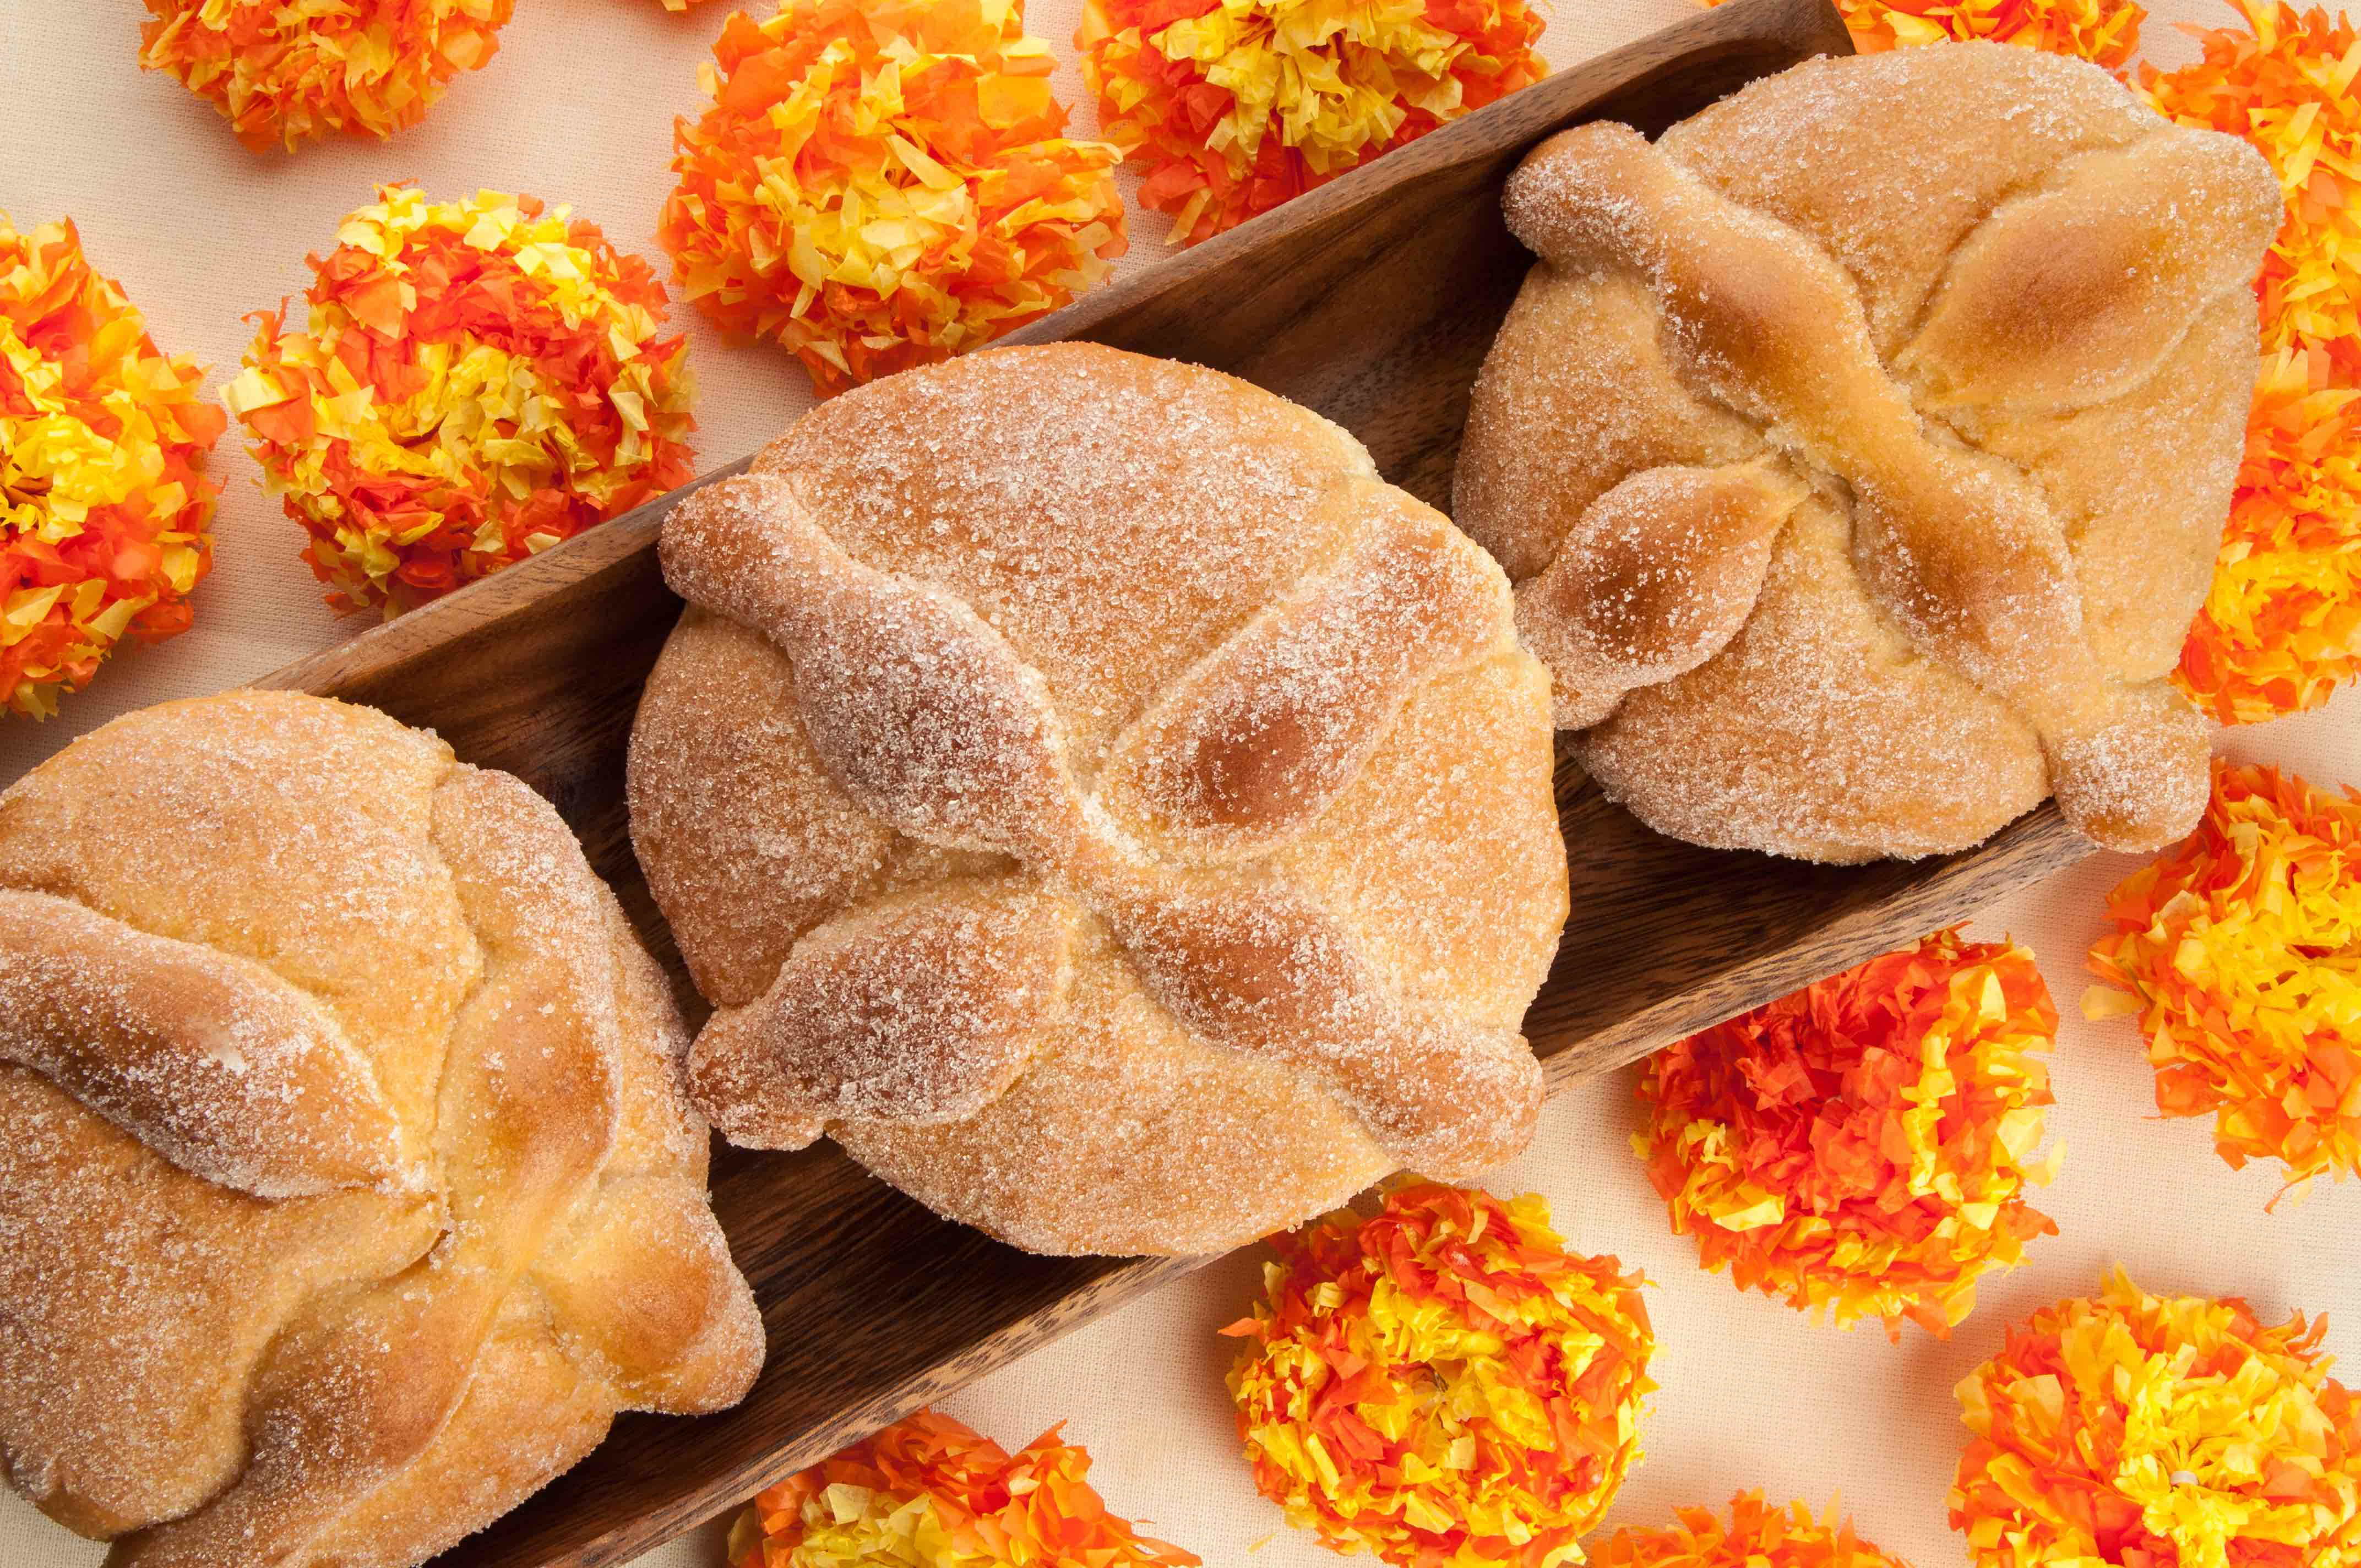 You Will Either Hate or Love How Pan de Muerto Is Used in These Recipes